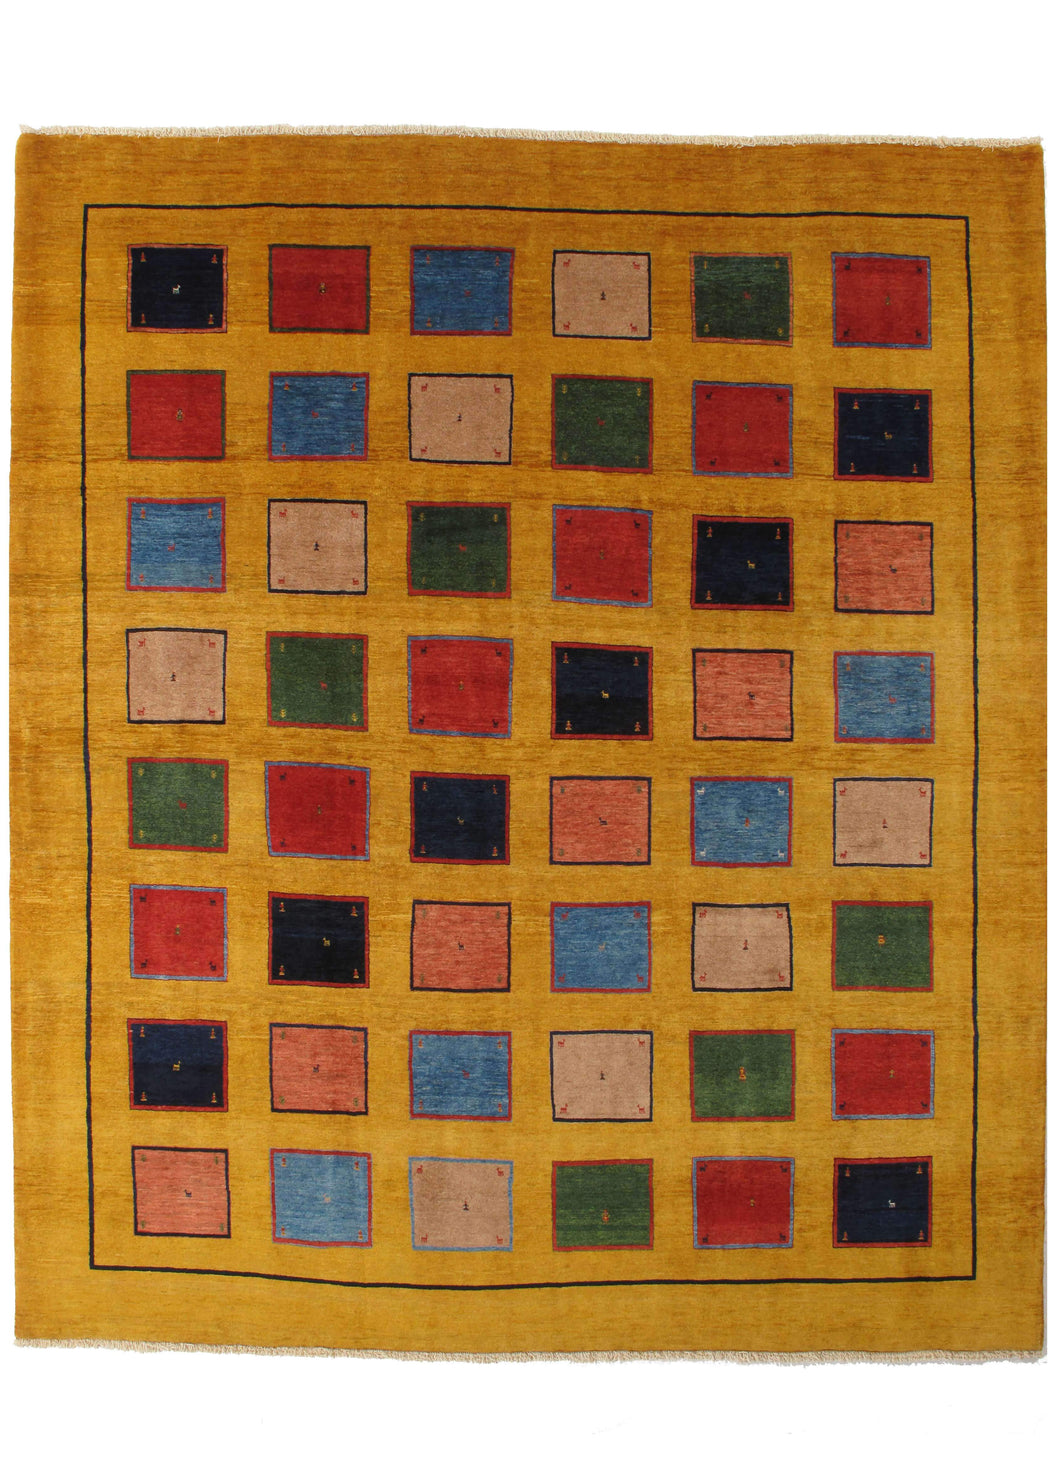 Contemporary Modern Colorful YELLOW handwoven South Persian Lori Gabbeh Room size rug with colorful blocks design